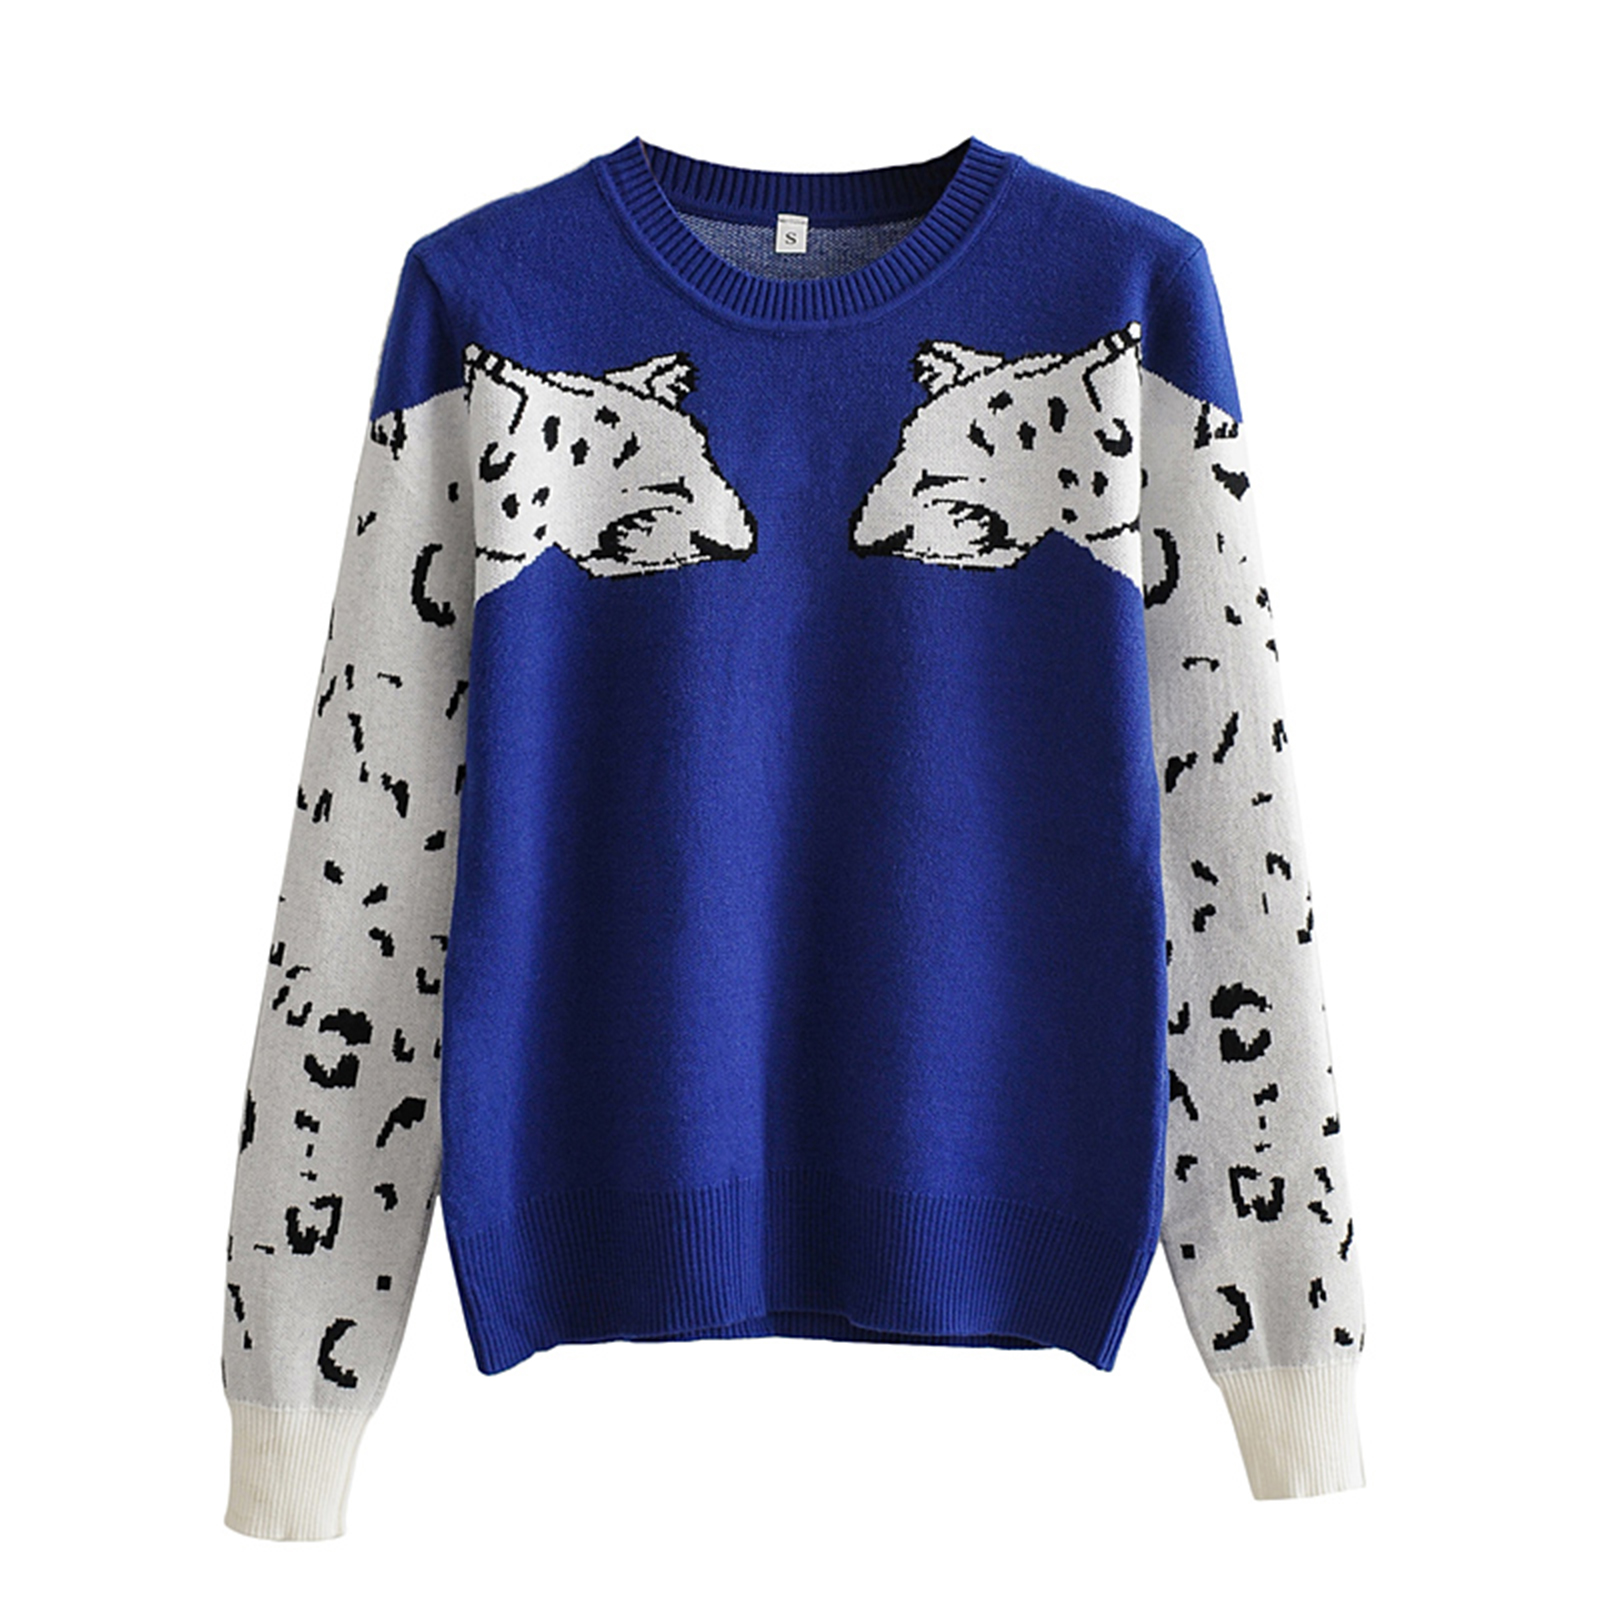 Women's Casual Long-sleeved Sweater Autumn Personality Leopard Pattern Round Neck Pullover Knitwear